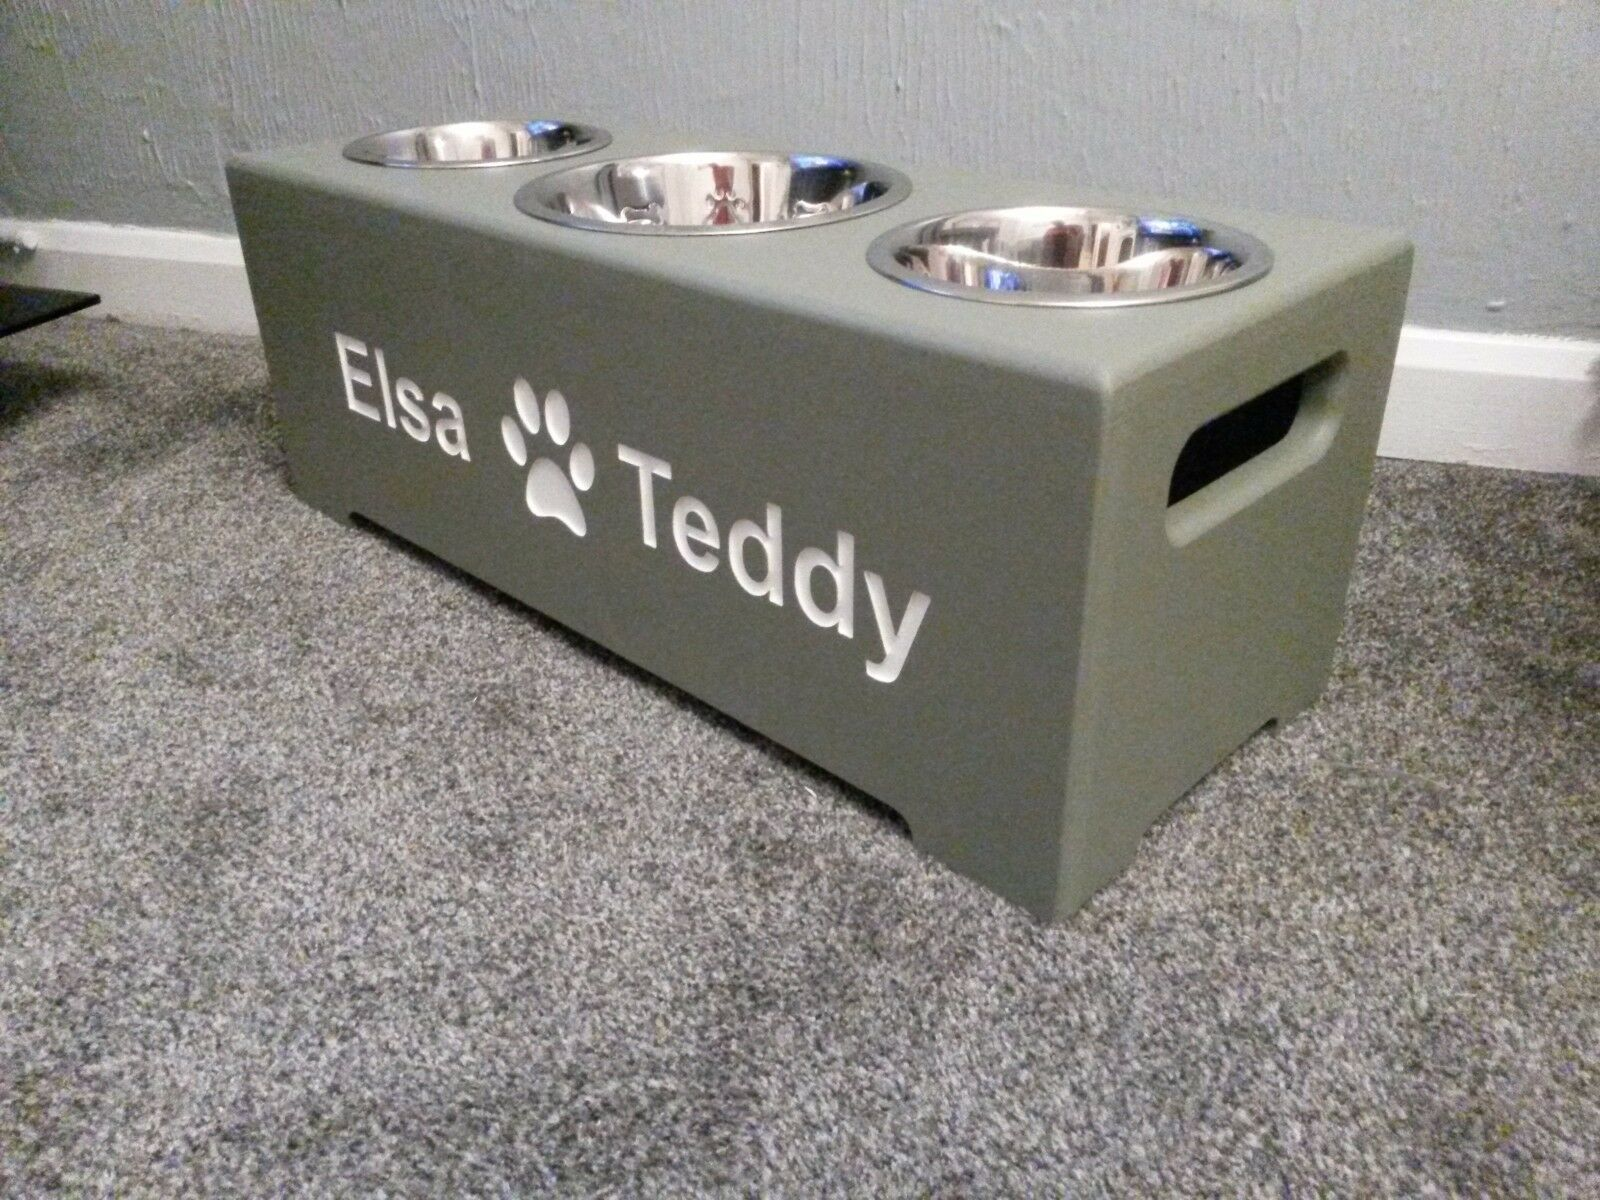 HANDMADE WOODEN PERSONALISED RAISED ELEVATED DOG BOWL 25cm HIGH & BOWLS INCLUDED